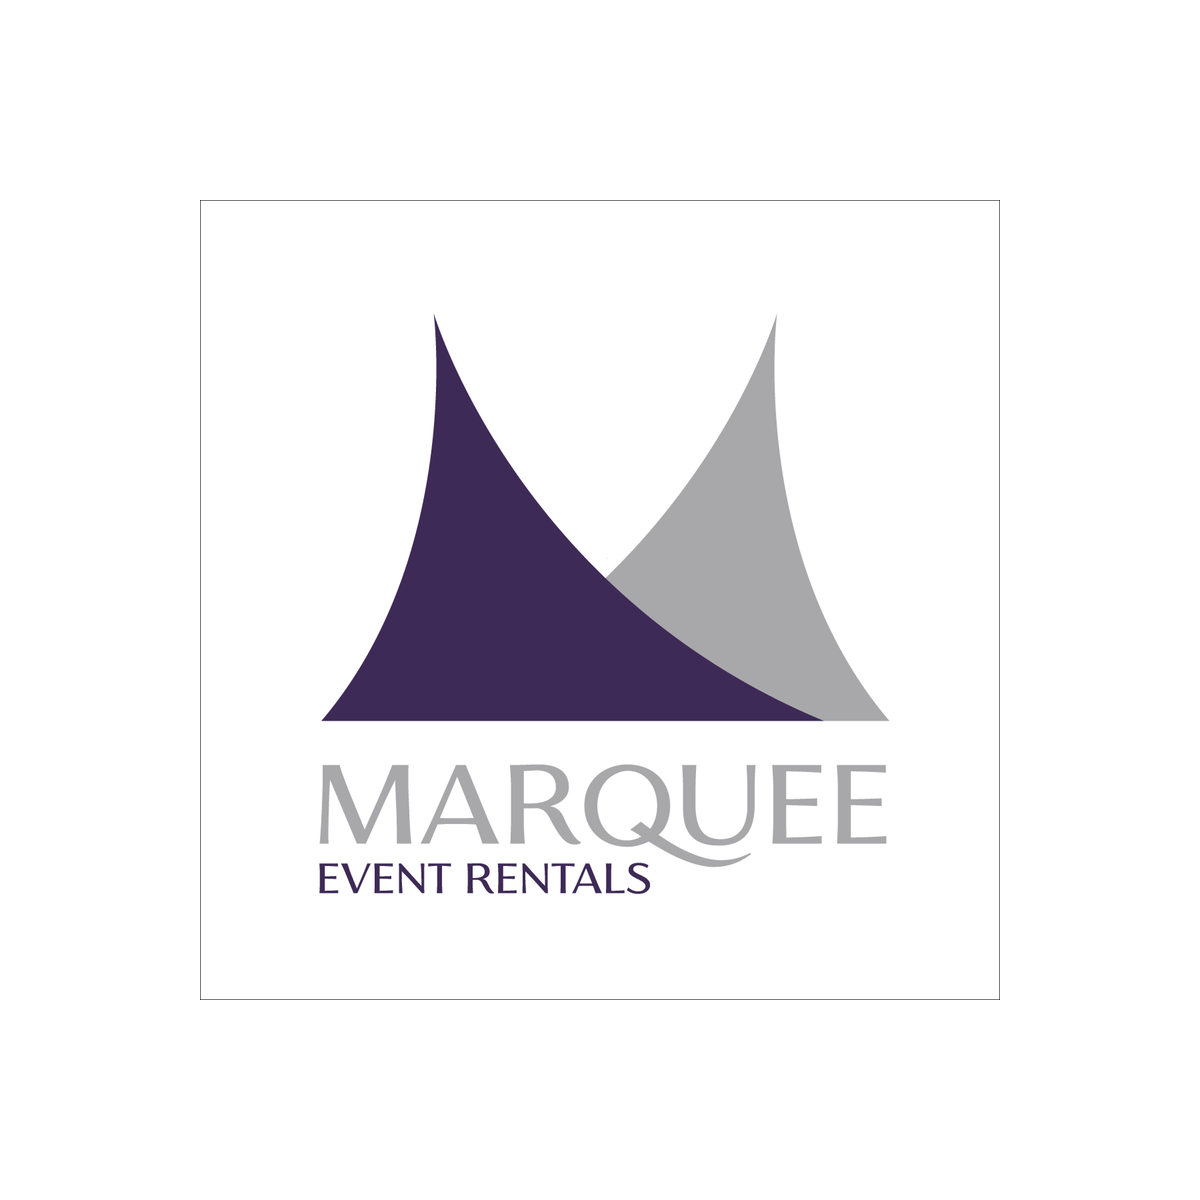 marquee-event-rentals-logo